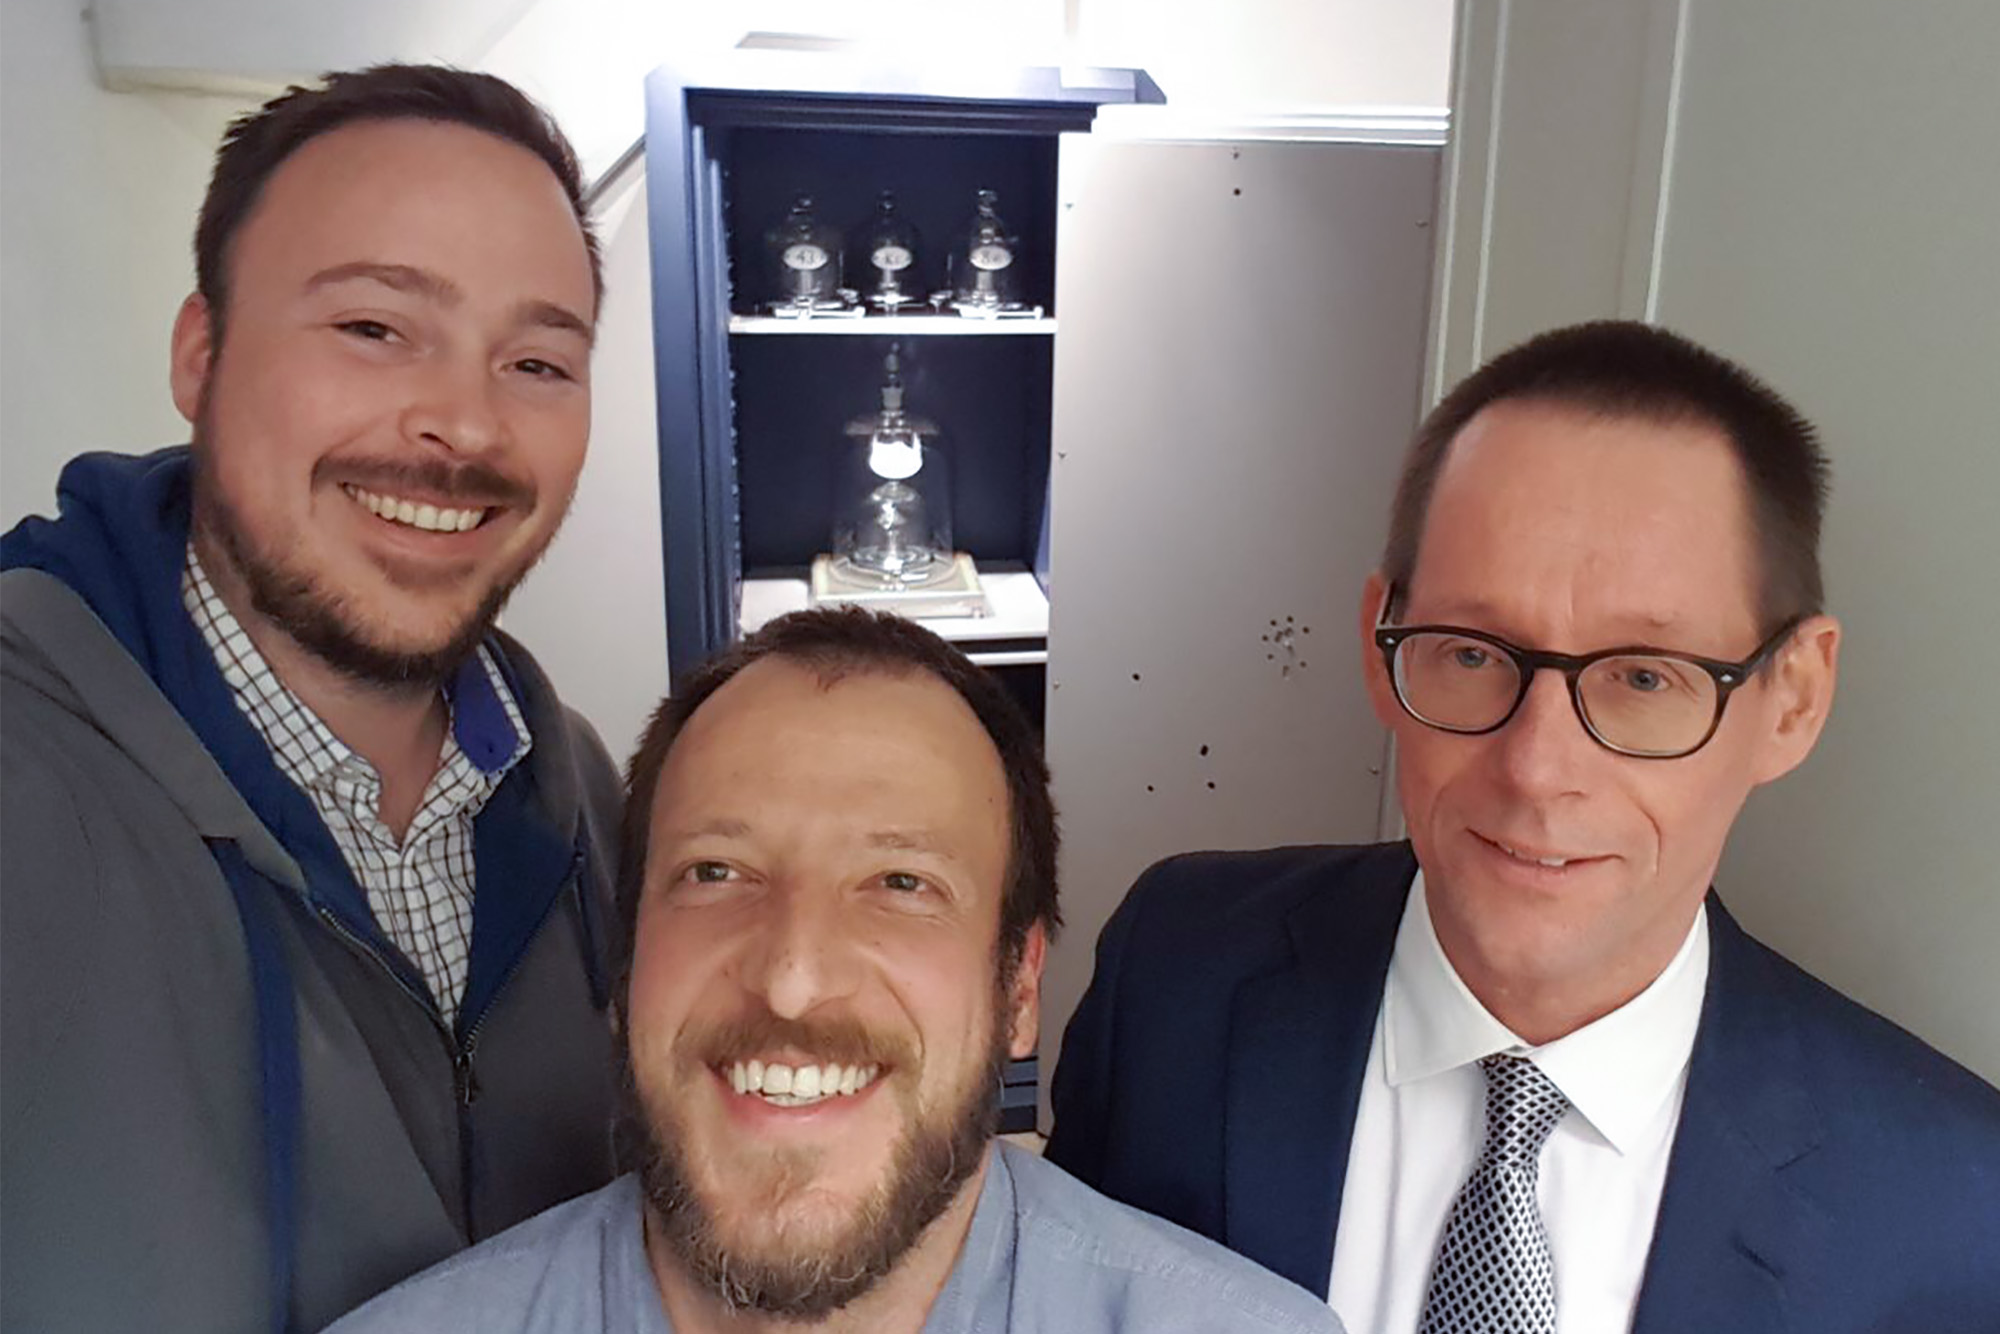 three men take a selfie inside the kilogram vault. The kilogram is visible in a safe behind them.